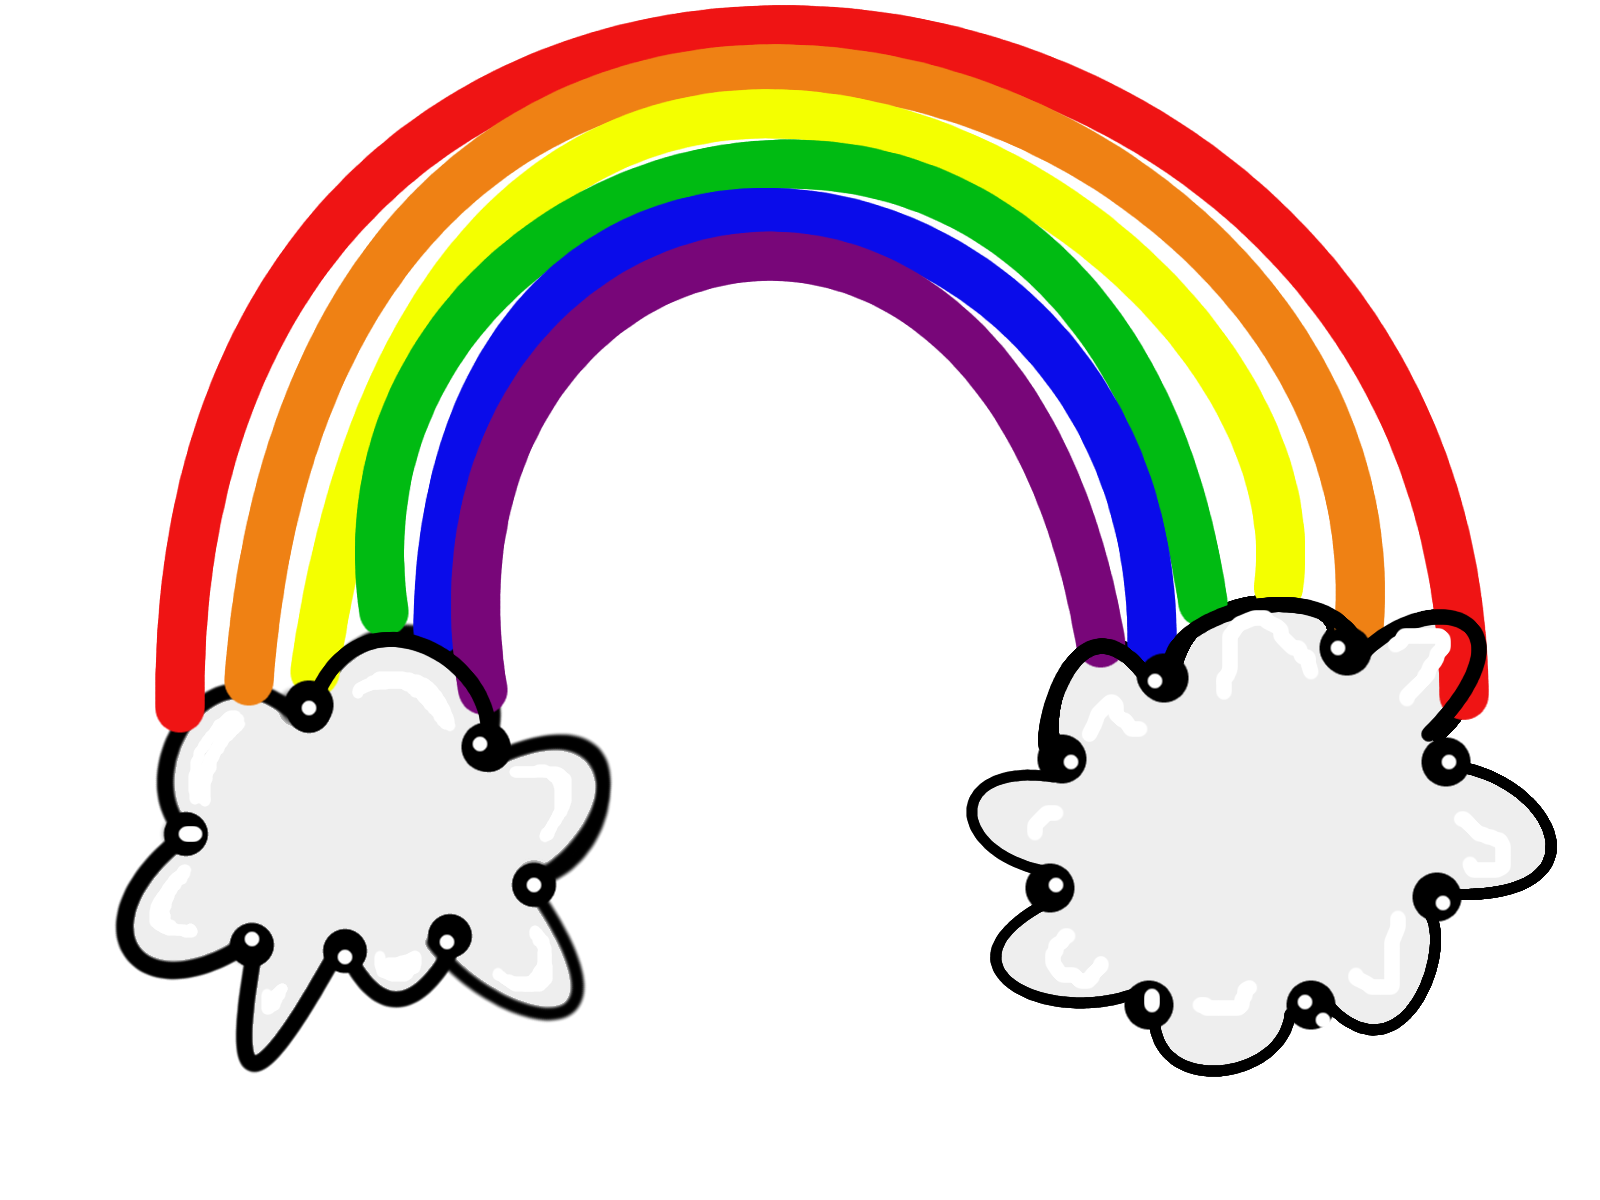 Rainbow clipart #10, Download drawings